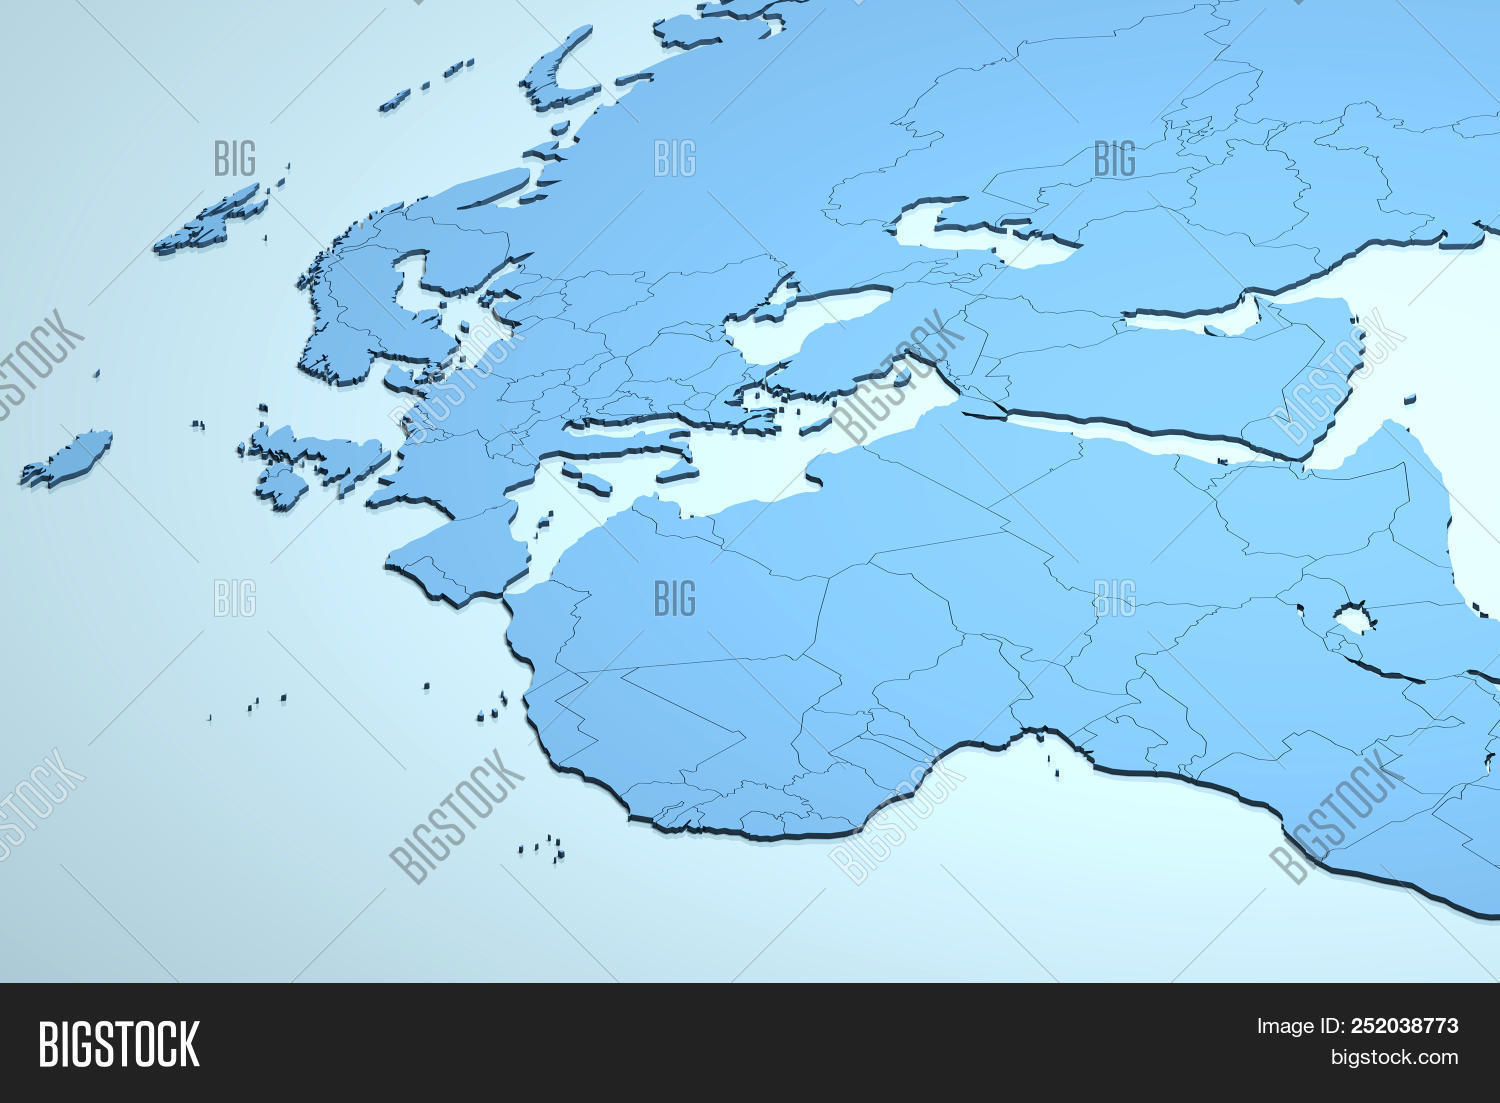 Europe Africa Middle Image & Photo (Free Trial) | Bigstock